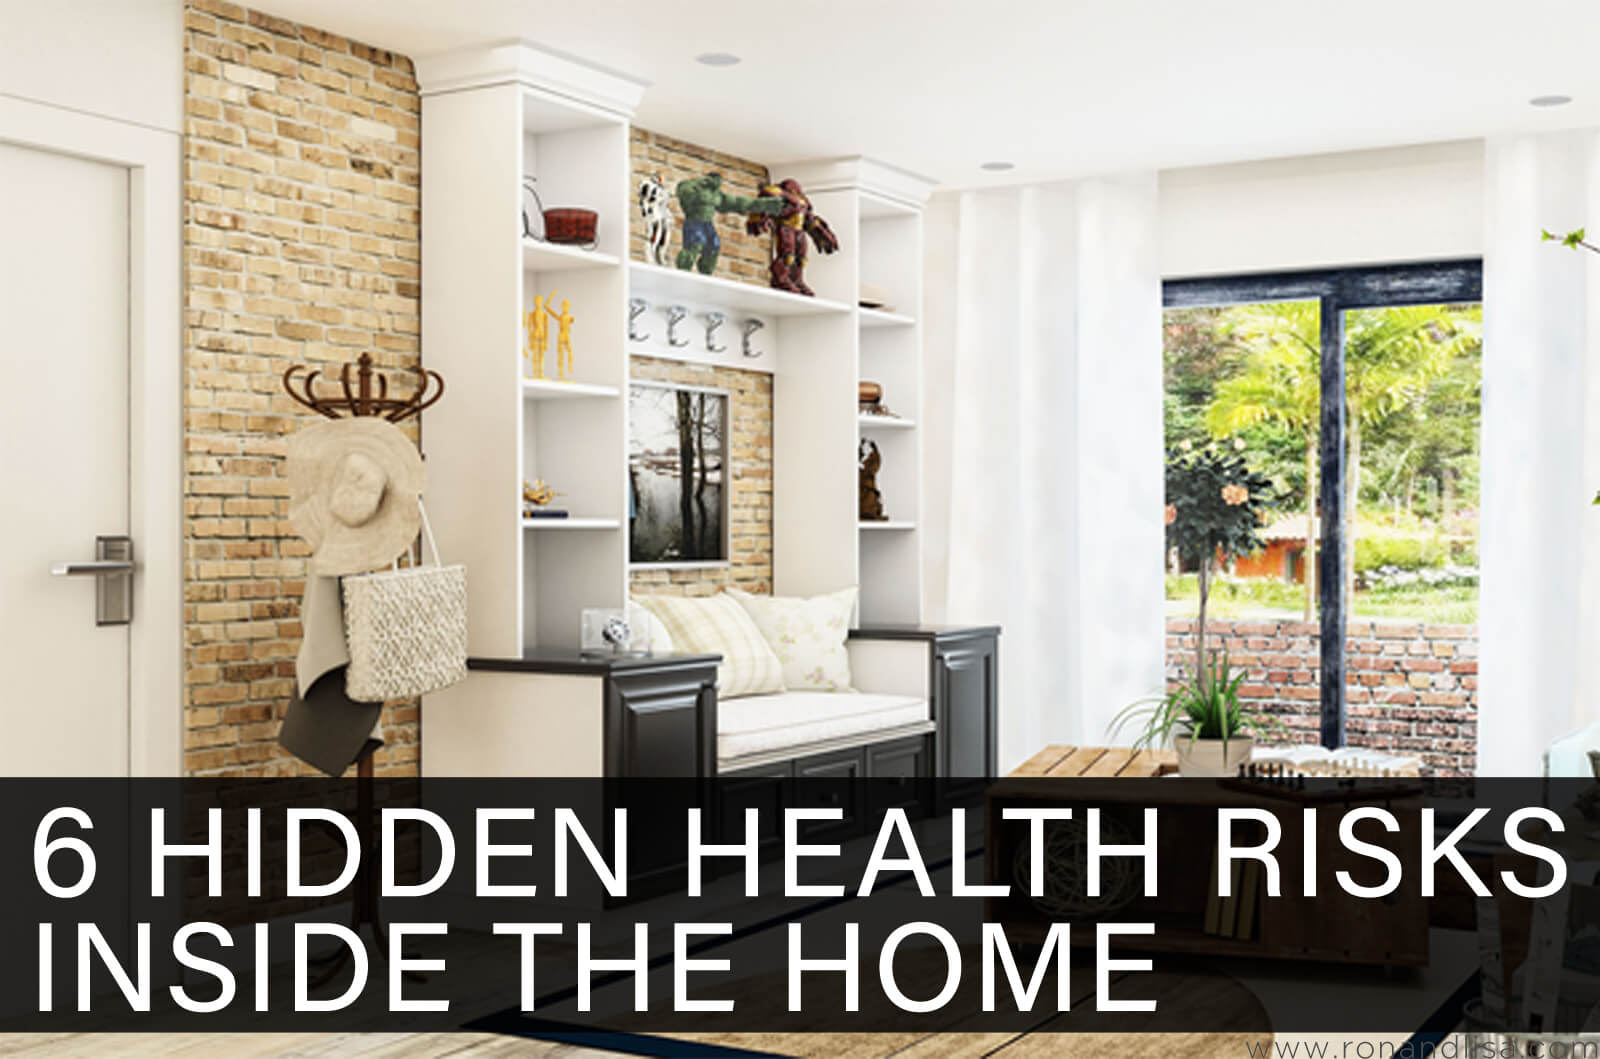 6 Hidden Health Risks Inside the Home